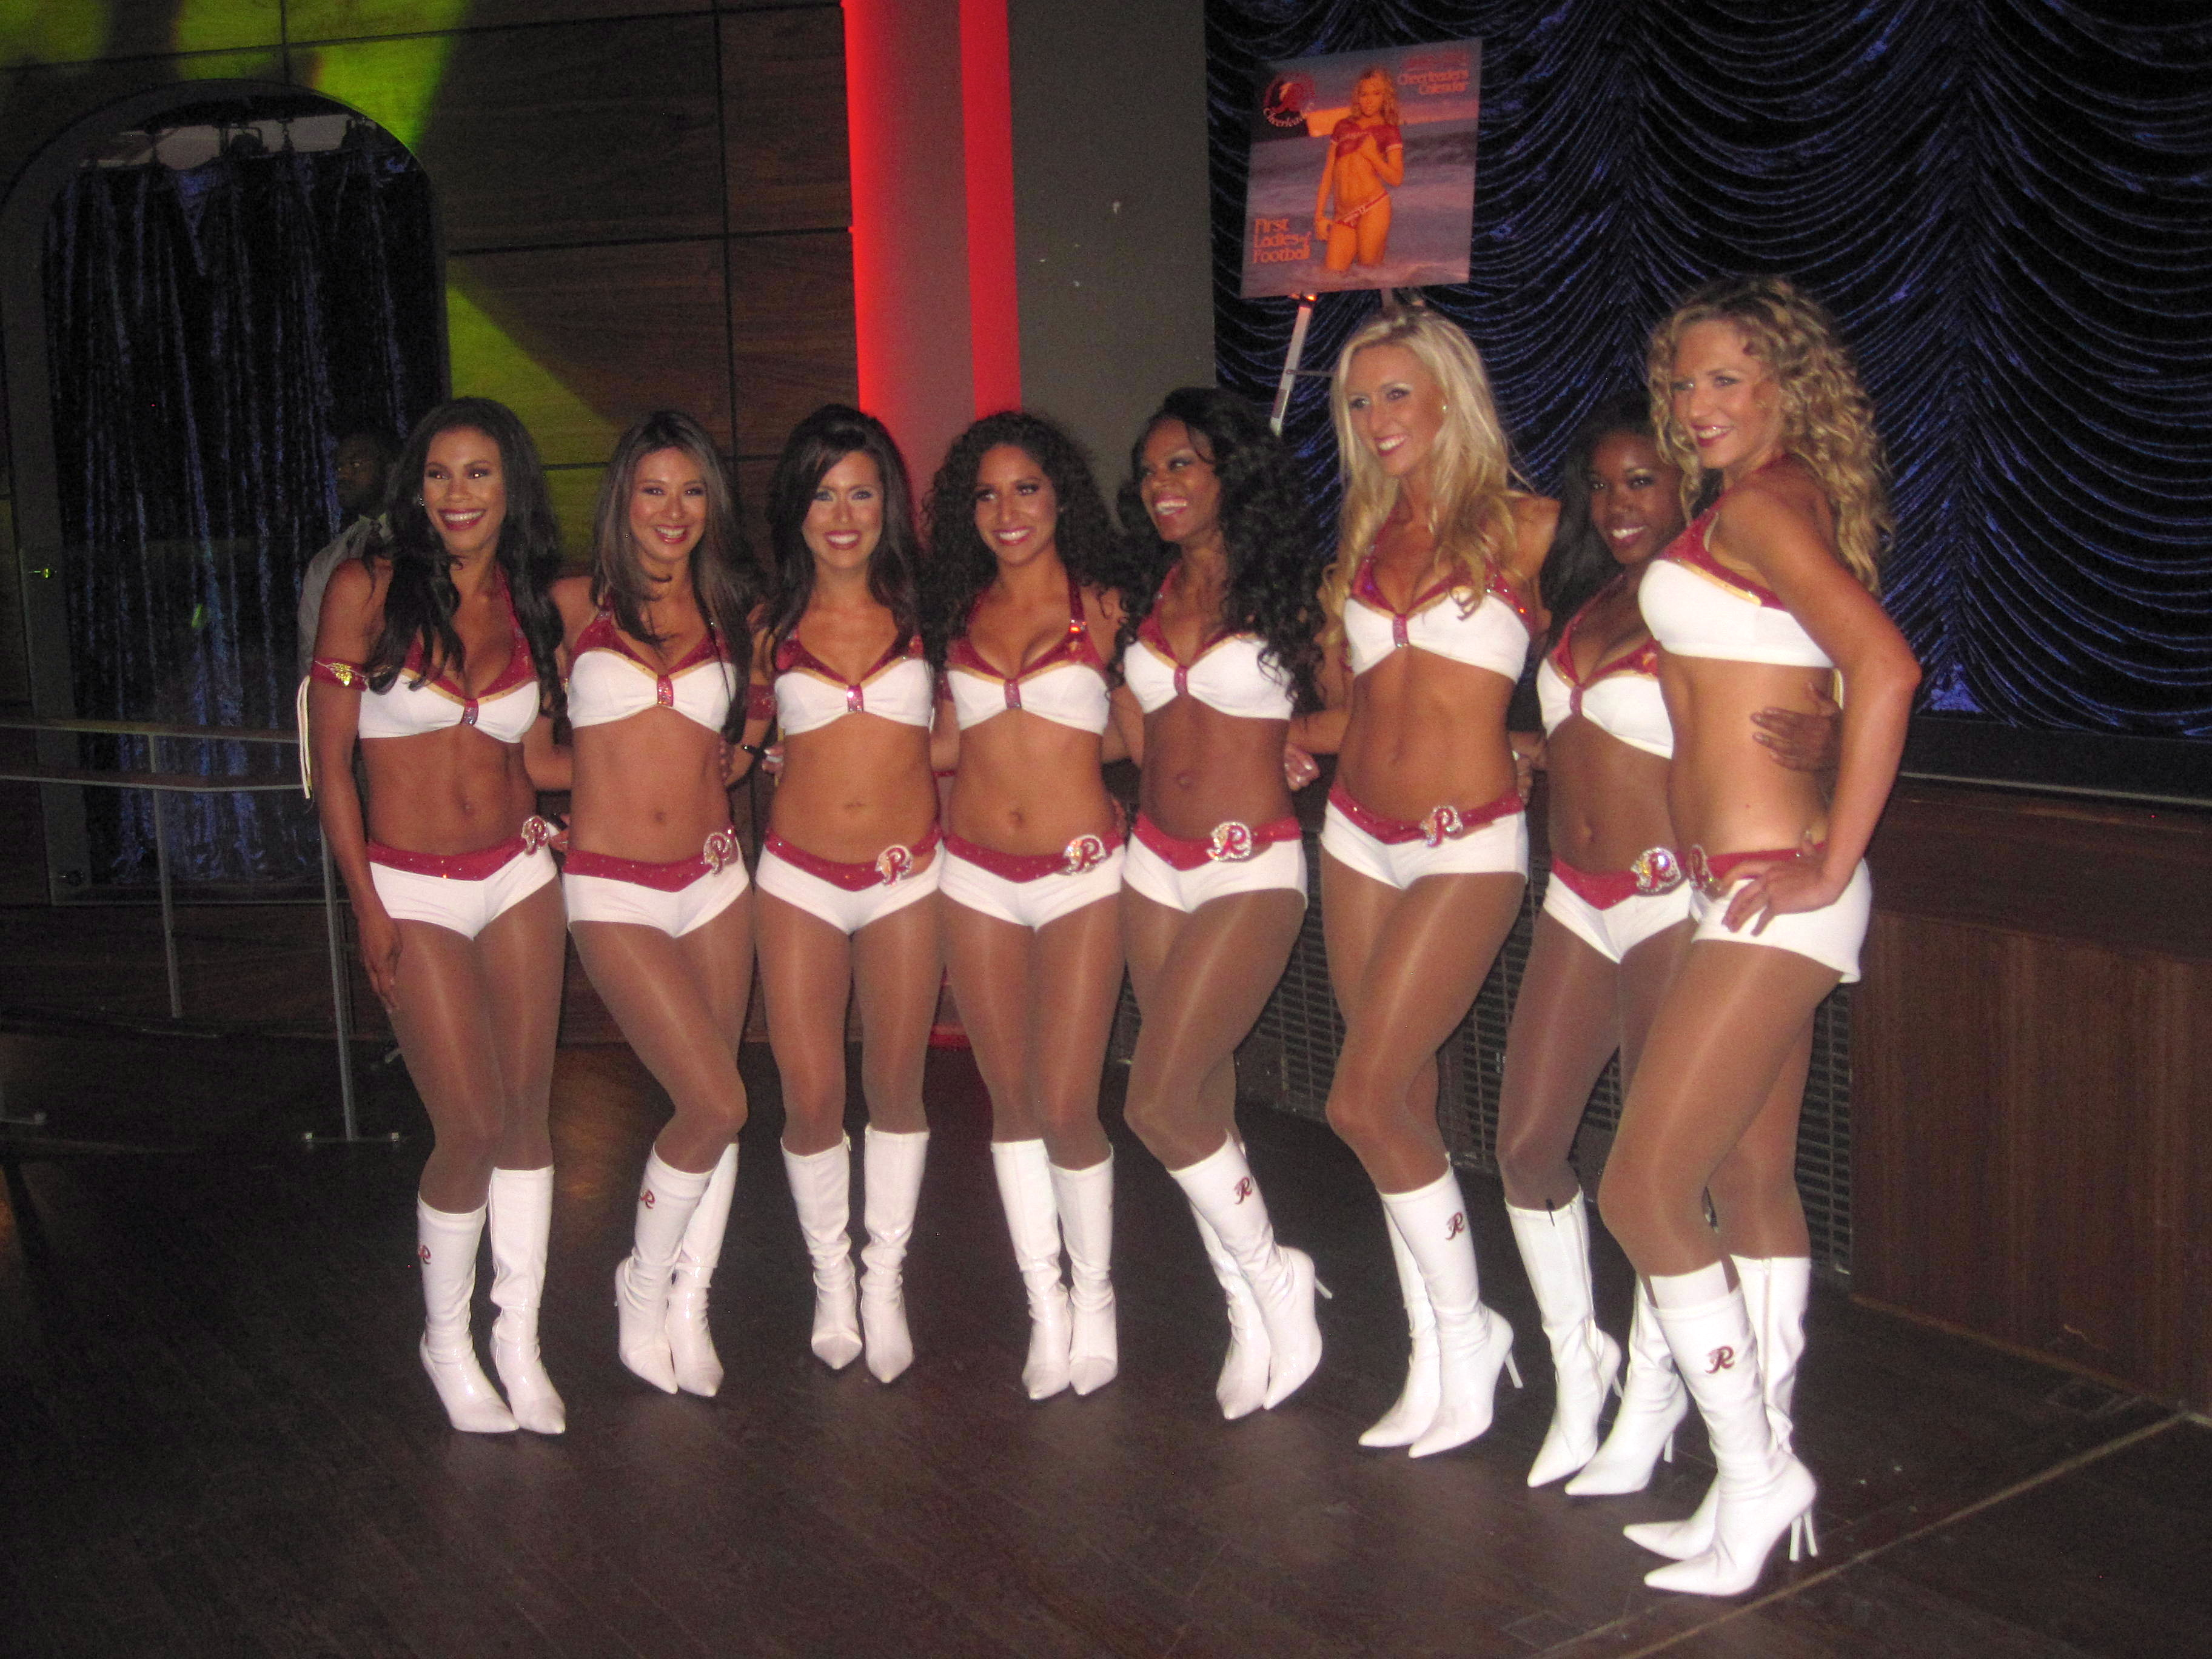 [Party Pix] Redskins Cheerleader Calendar Release Party